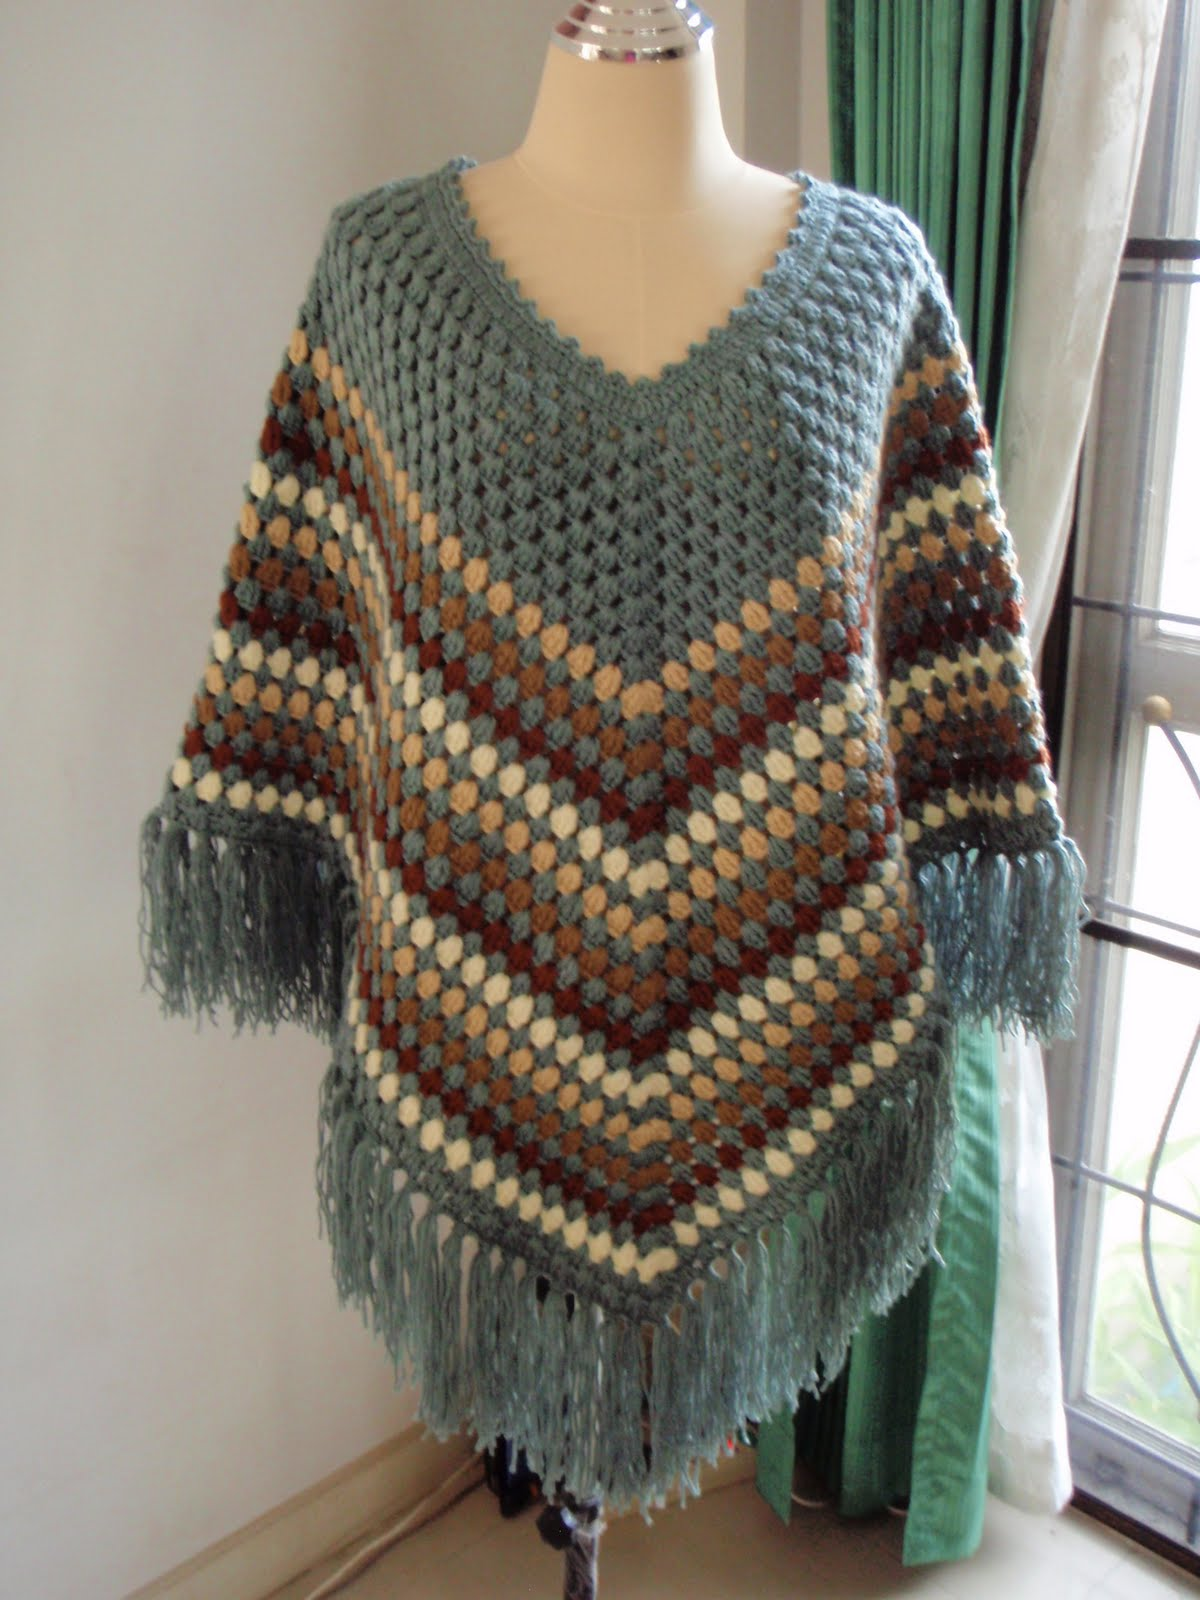 Crocheting Ponchos : Myknittingdaily: Crochet Poncho Grey